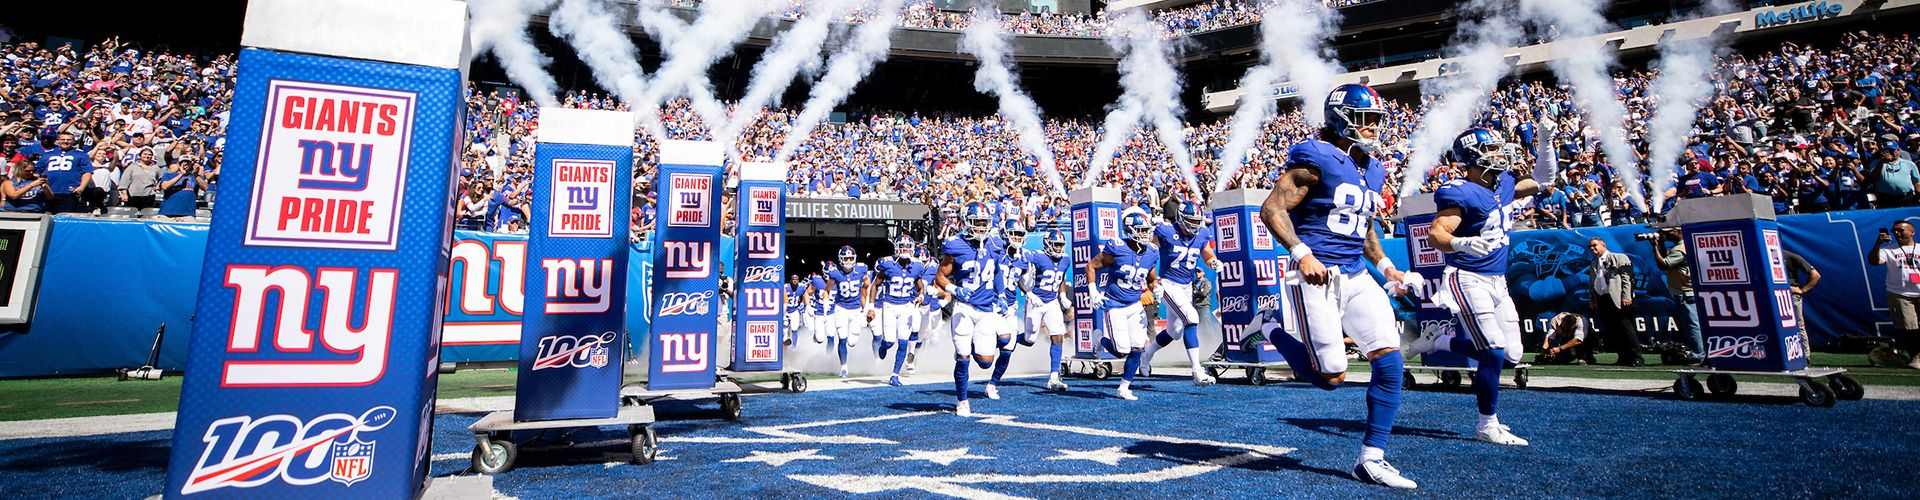 New York Giants run out of the tunnel during a regular season week 4 game against the Washington Redskins at MetLife Stadium in East Rutherford, NJ